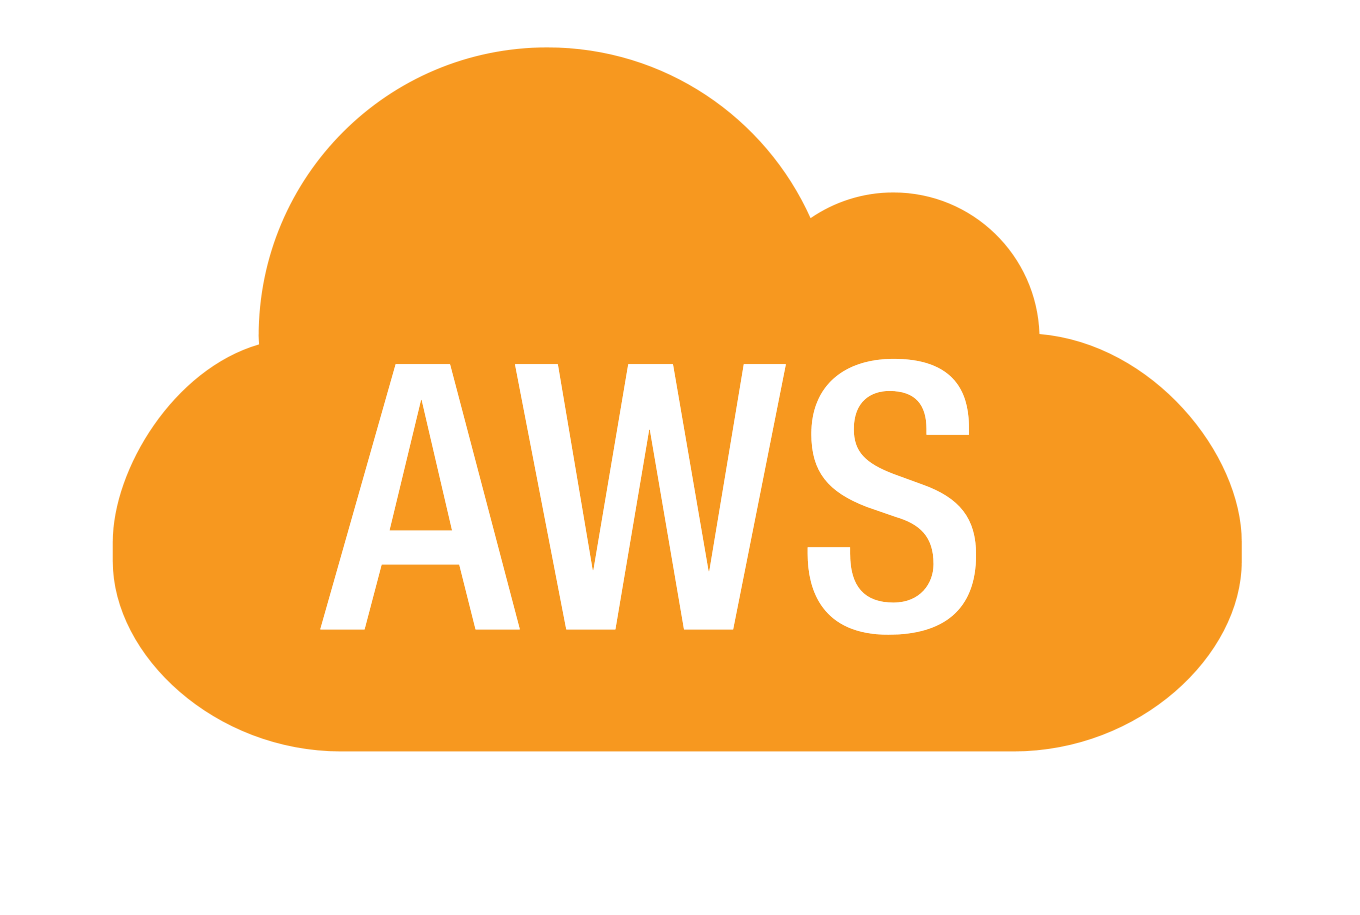 aws-sdk snippets pack for node js - Visual Studio Marketplace